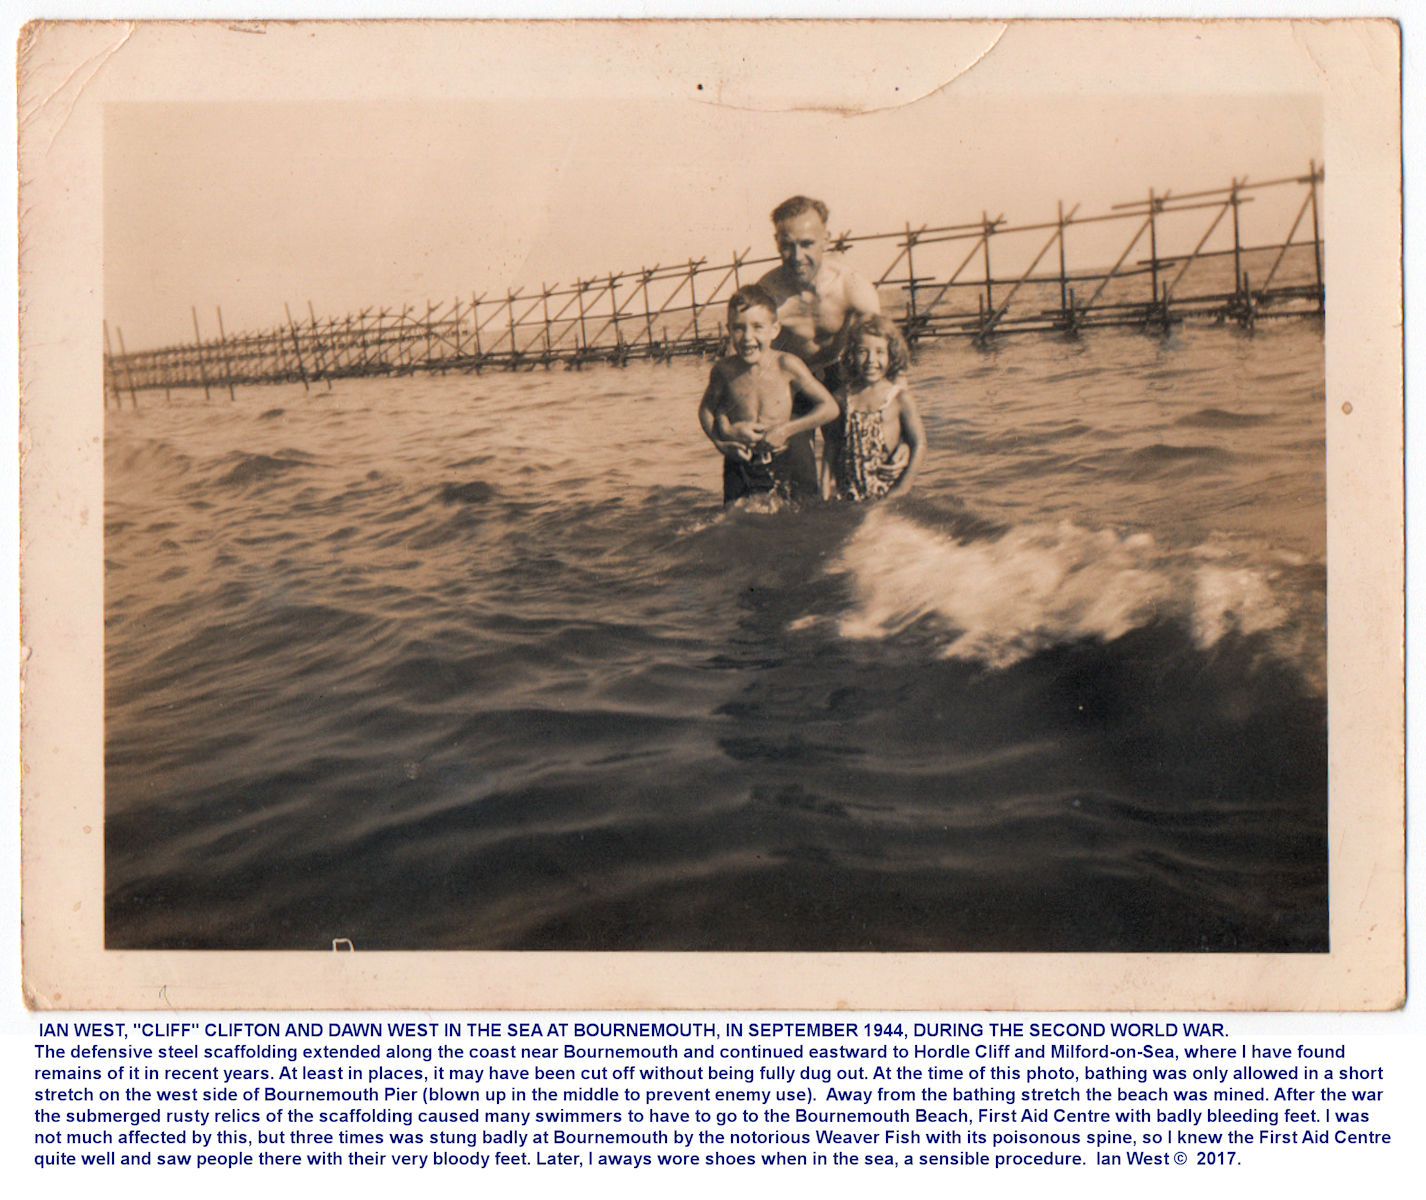 Bournemouth Beach, just west of the Pier, in September 1944 during the Second World War, with Ian West and family members in the sea, just landward of the scaffolding sea defences that were widespread on the coast at the time